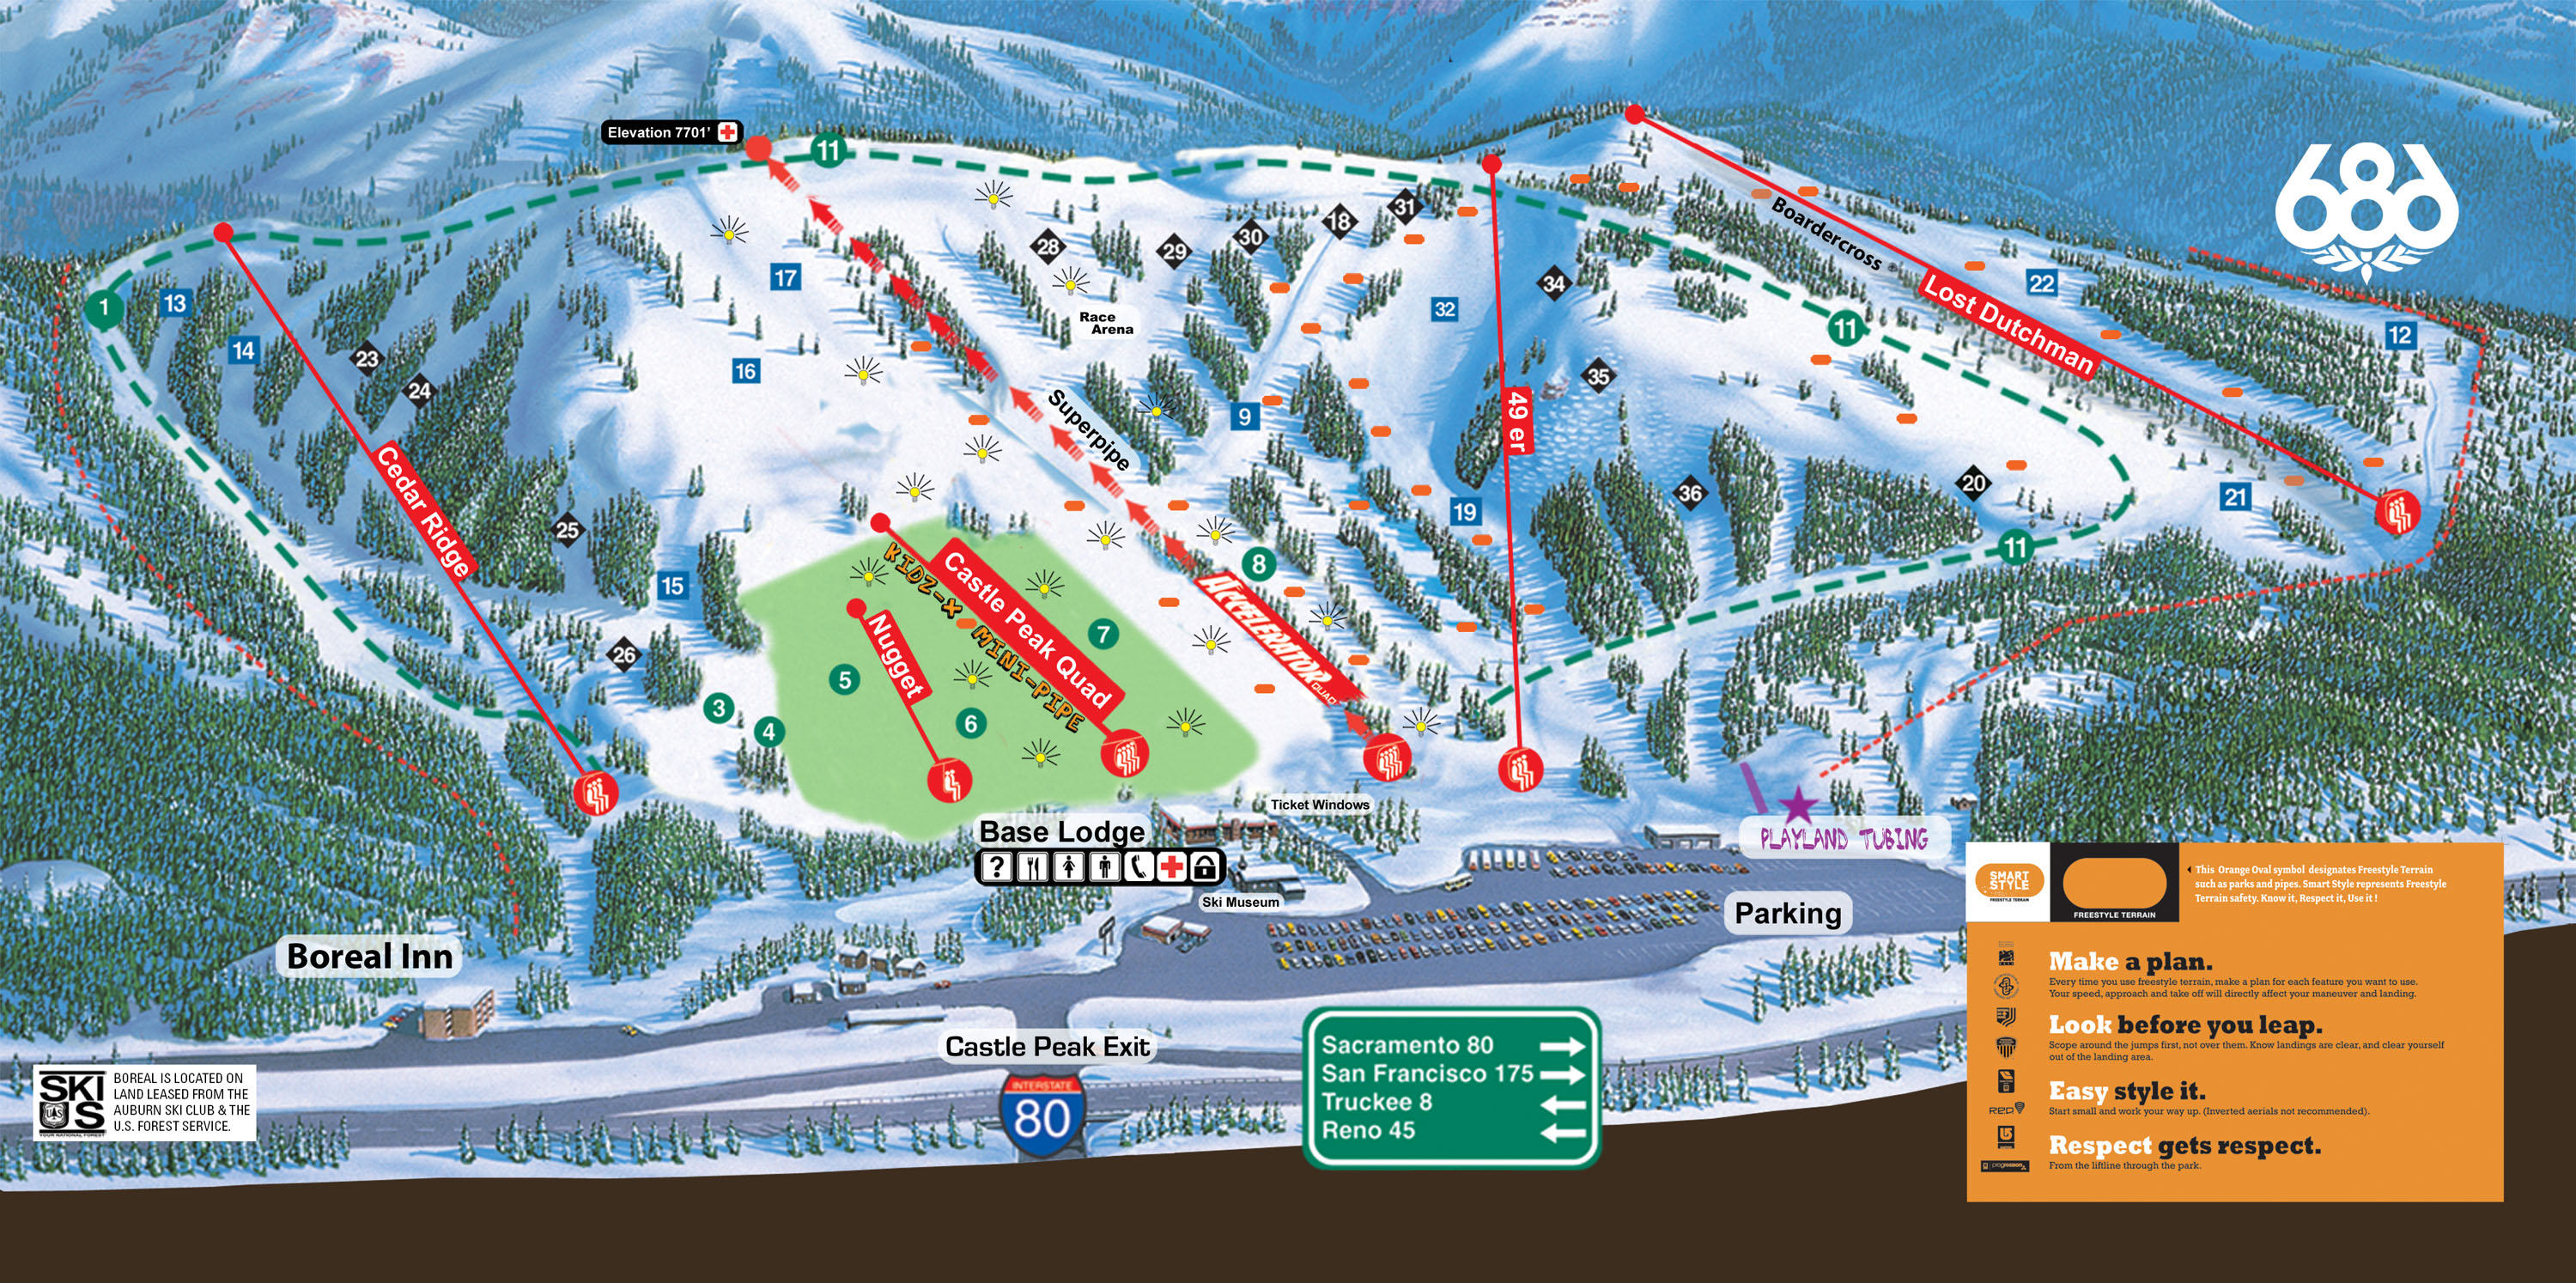 Boreal Mountain Resort - SkiMap.org on